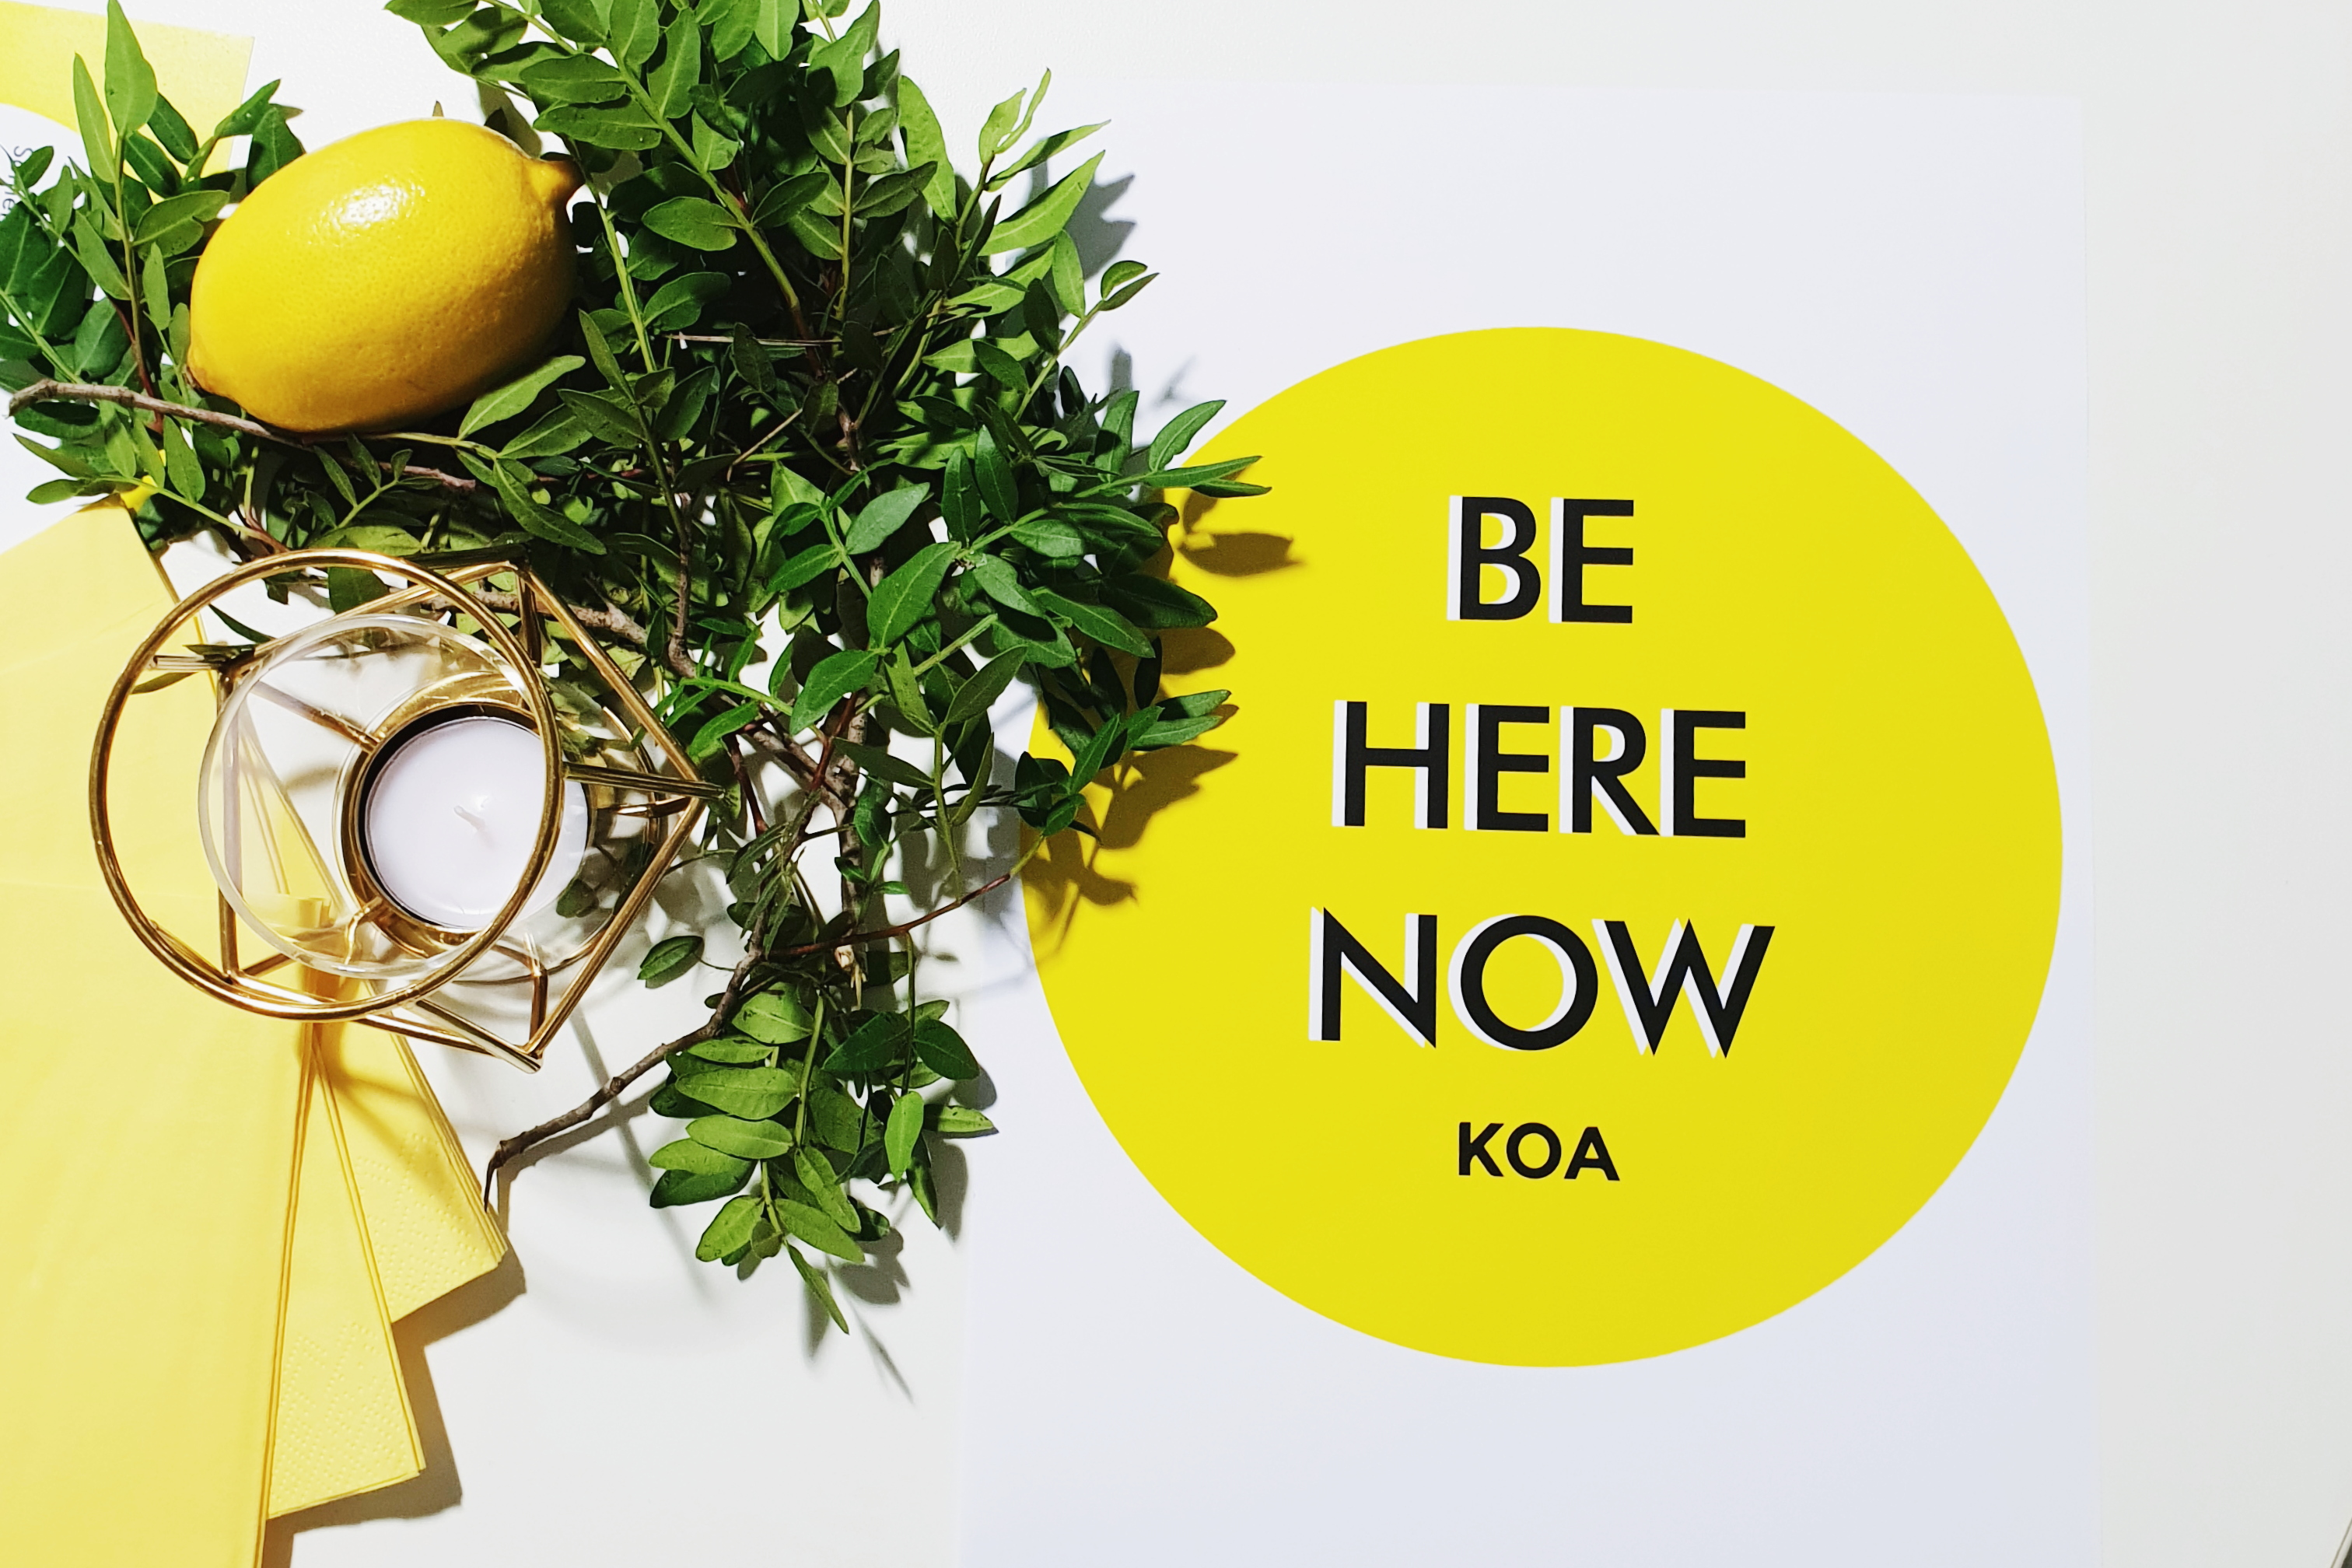 KOA Logo Be Here Now